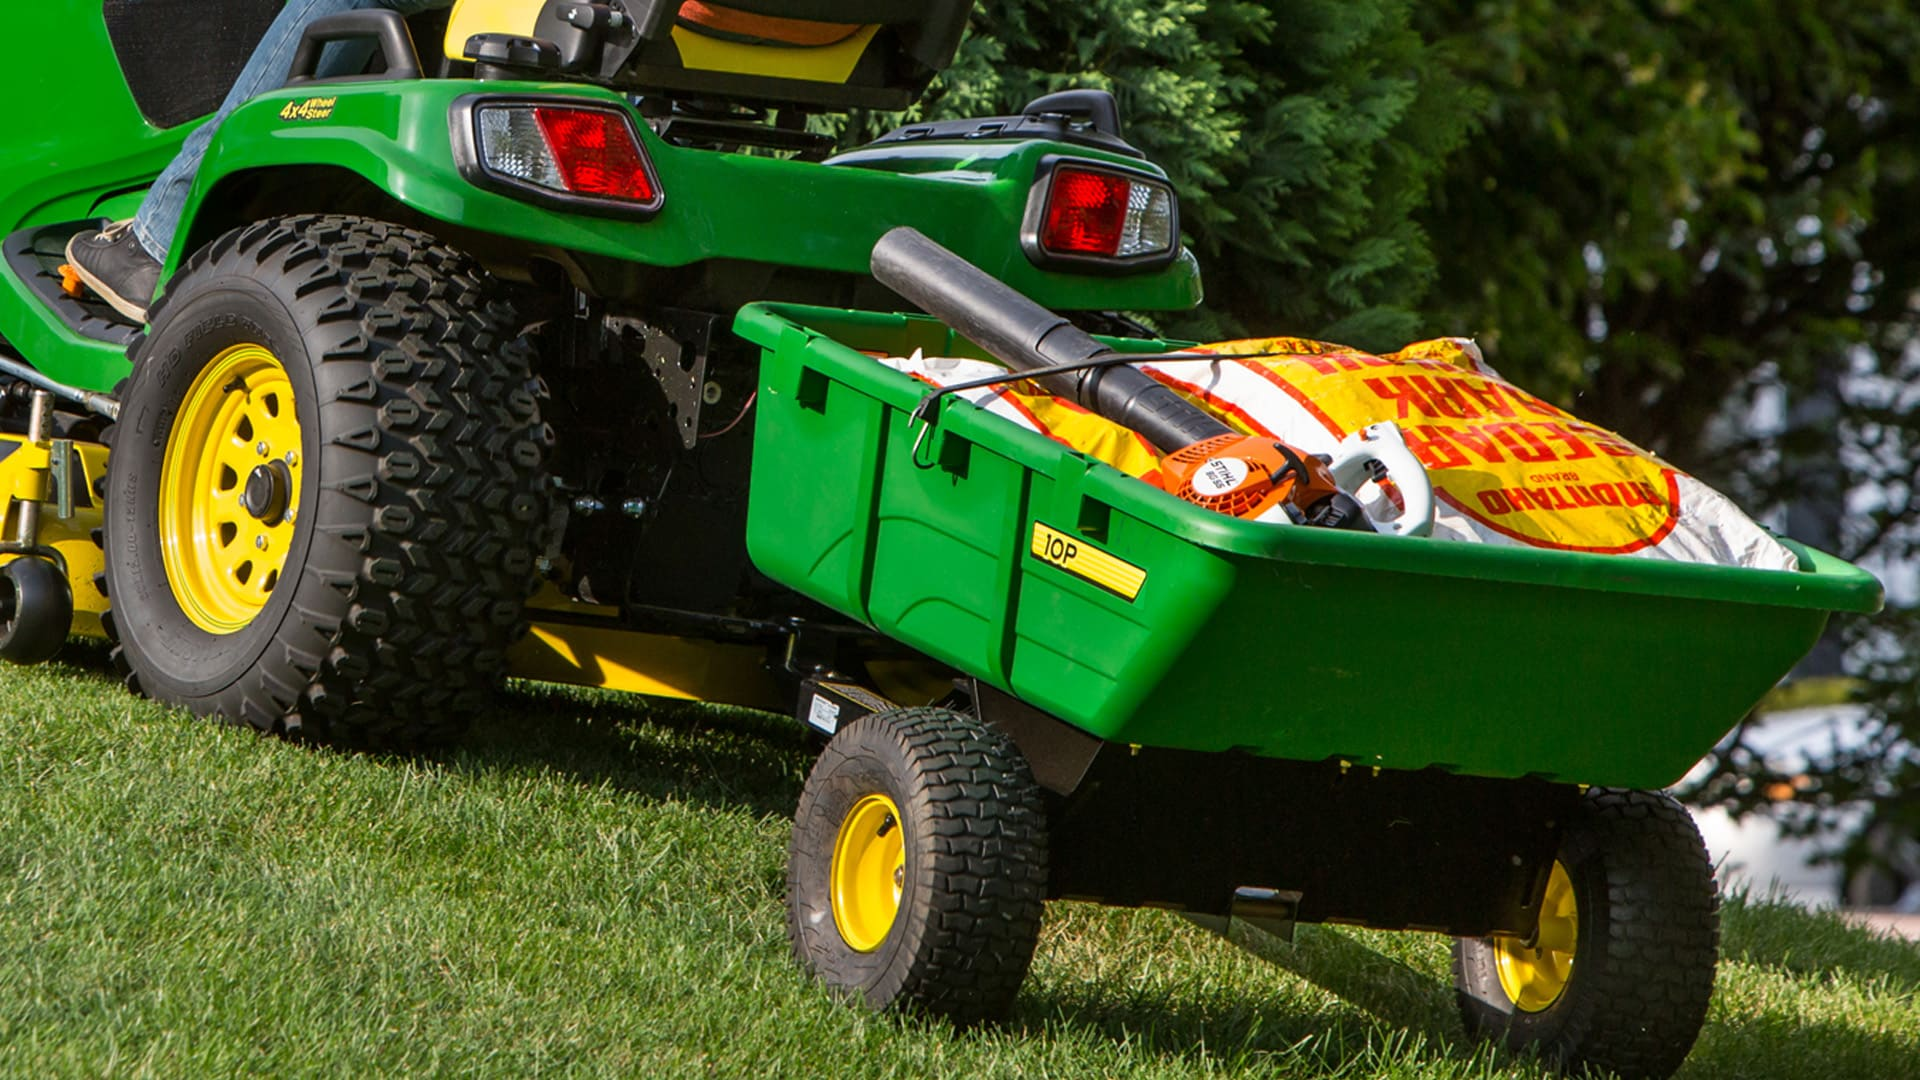 Closeup shot of lawn tractor pulling a cart